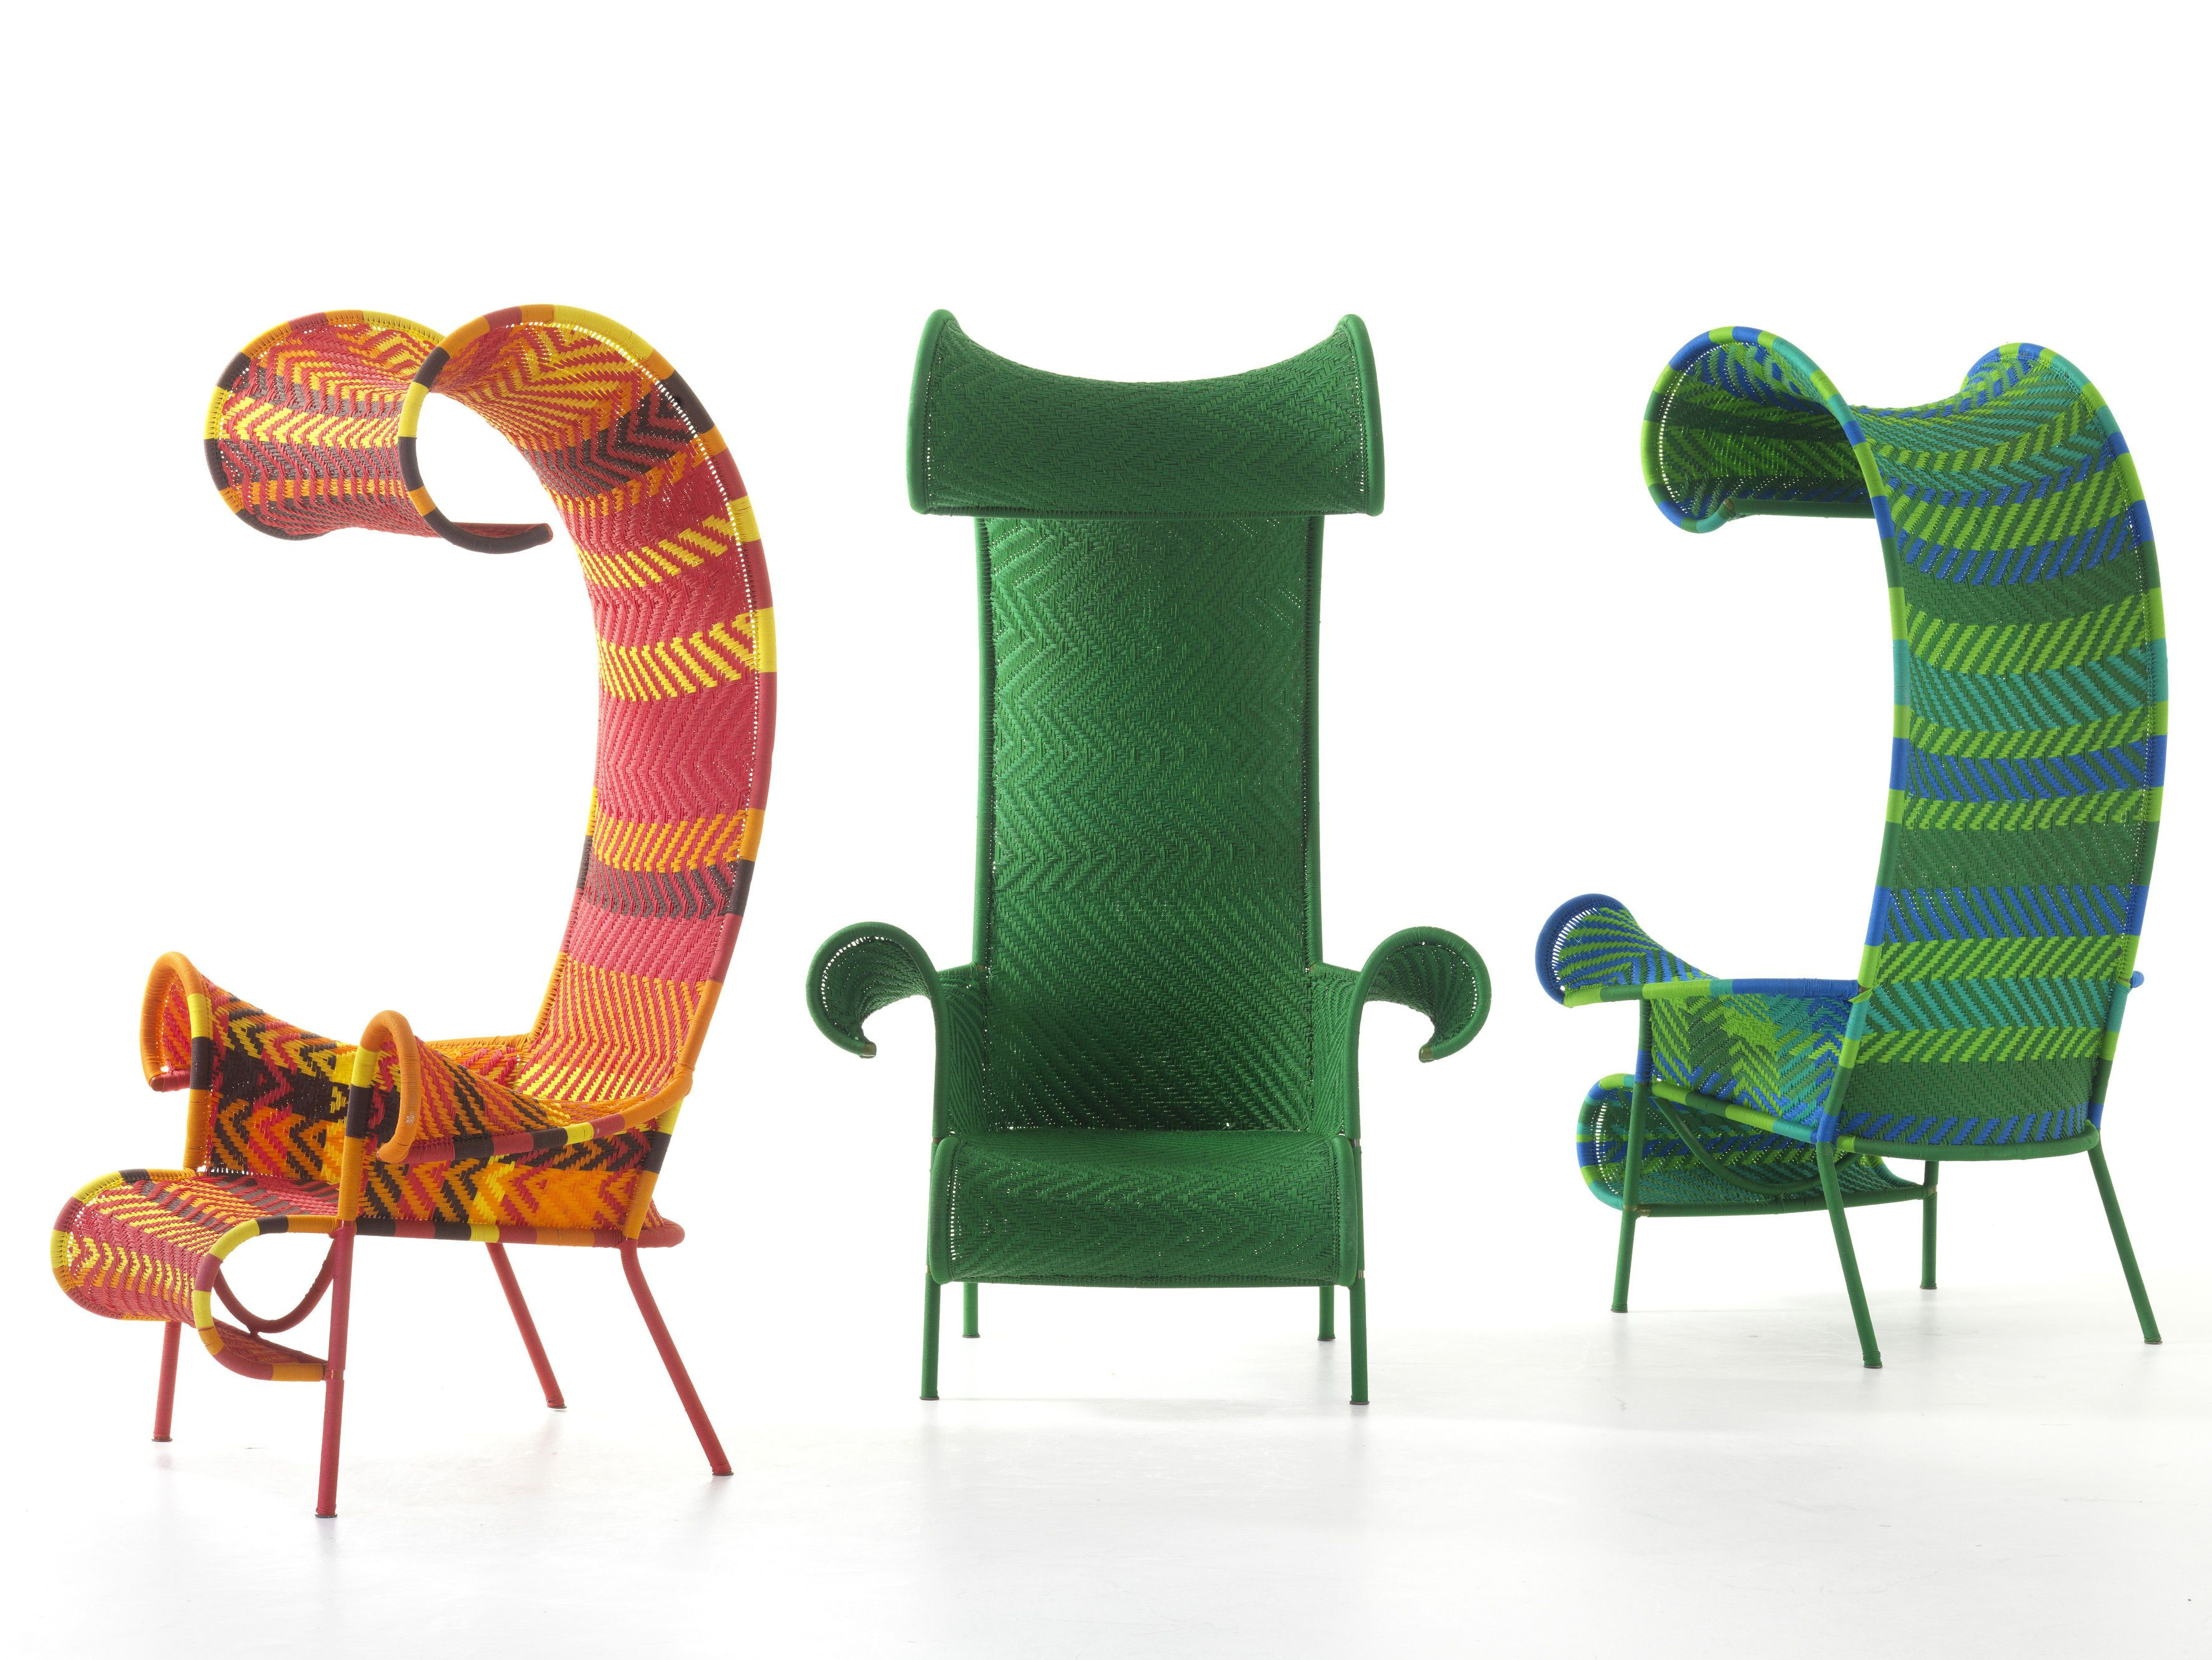 funky patio furniture. Shadowy Chair \u0026 Sunny Longer Lounge From Moroso Funky Patio Furniture